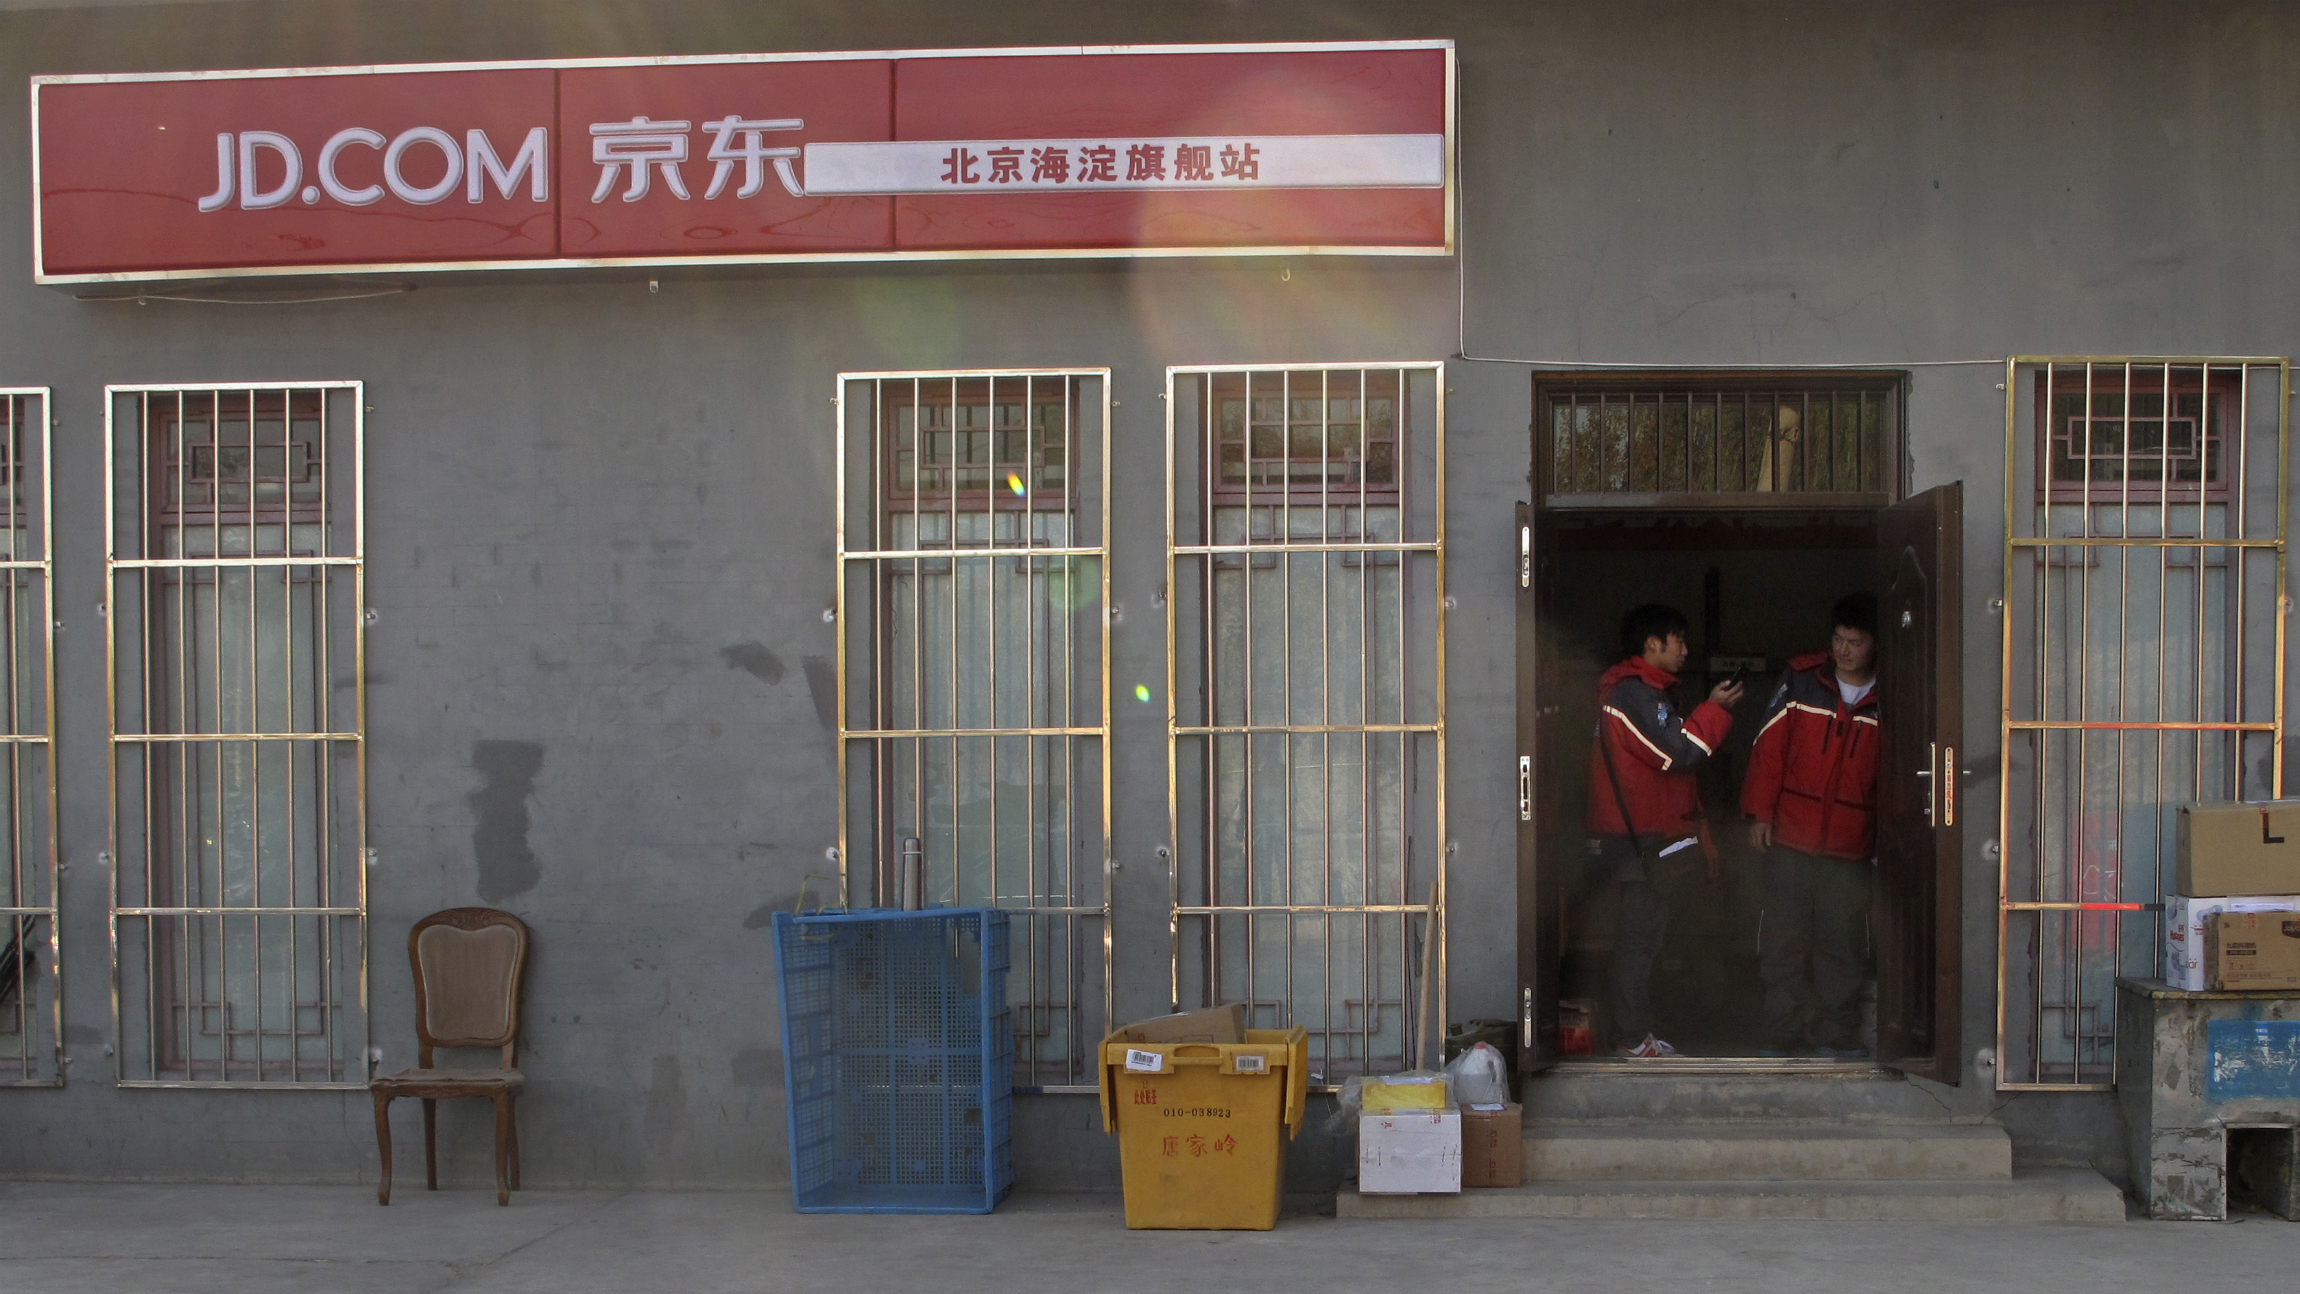 Two Jingdong, also known as JD.com, couriers chat at the entrance to the company's Haidian district delivery station in Beijing, November 20, 2013. The Beijing-based firm, China's second largest e-commerce company, operates its own network of couriers and warehouses, a factor it says ensures timely and efficient delivery. Larger rivals Tmall and Taobao, the online marketplaces run by mega-firm Alibaba Group Holding Ltd, still depend on merchants and external courier firms for their logistics. Jingdong uses a 10,000-strong fleet of couriers to deliver packages to major locations across China within 24 hours. The company also has 1,400 warehouses nationwide to supply a customer base that accounts for over a sixth of China's 591 million registered Internet users. Picture taken November 20, 2013. REUTERS/Paul Carsten